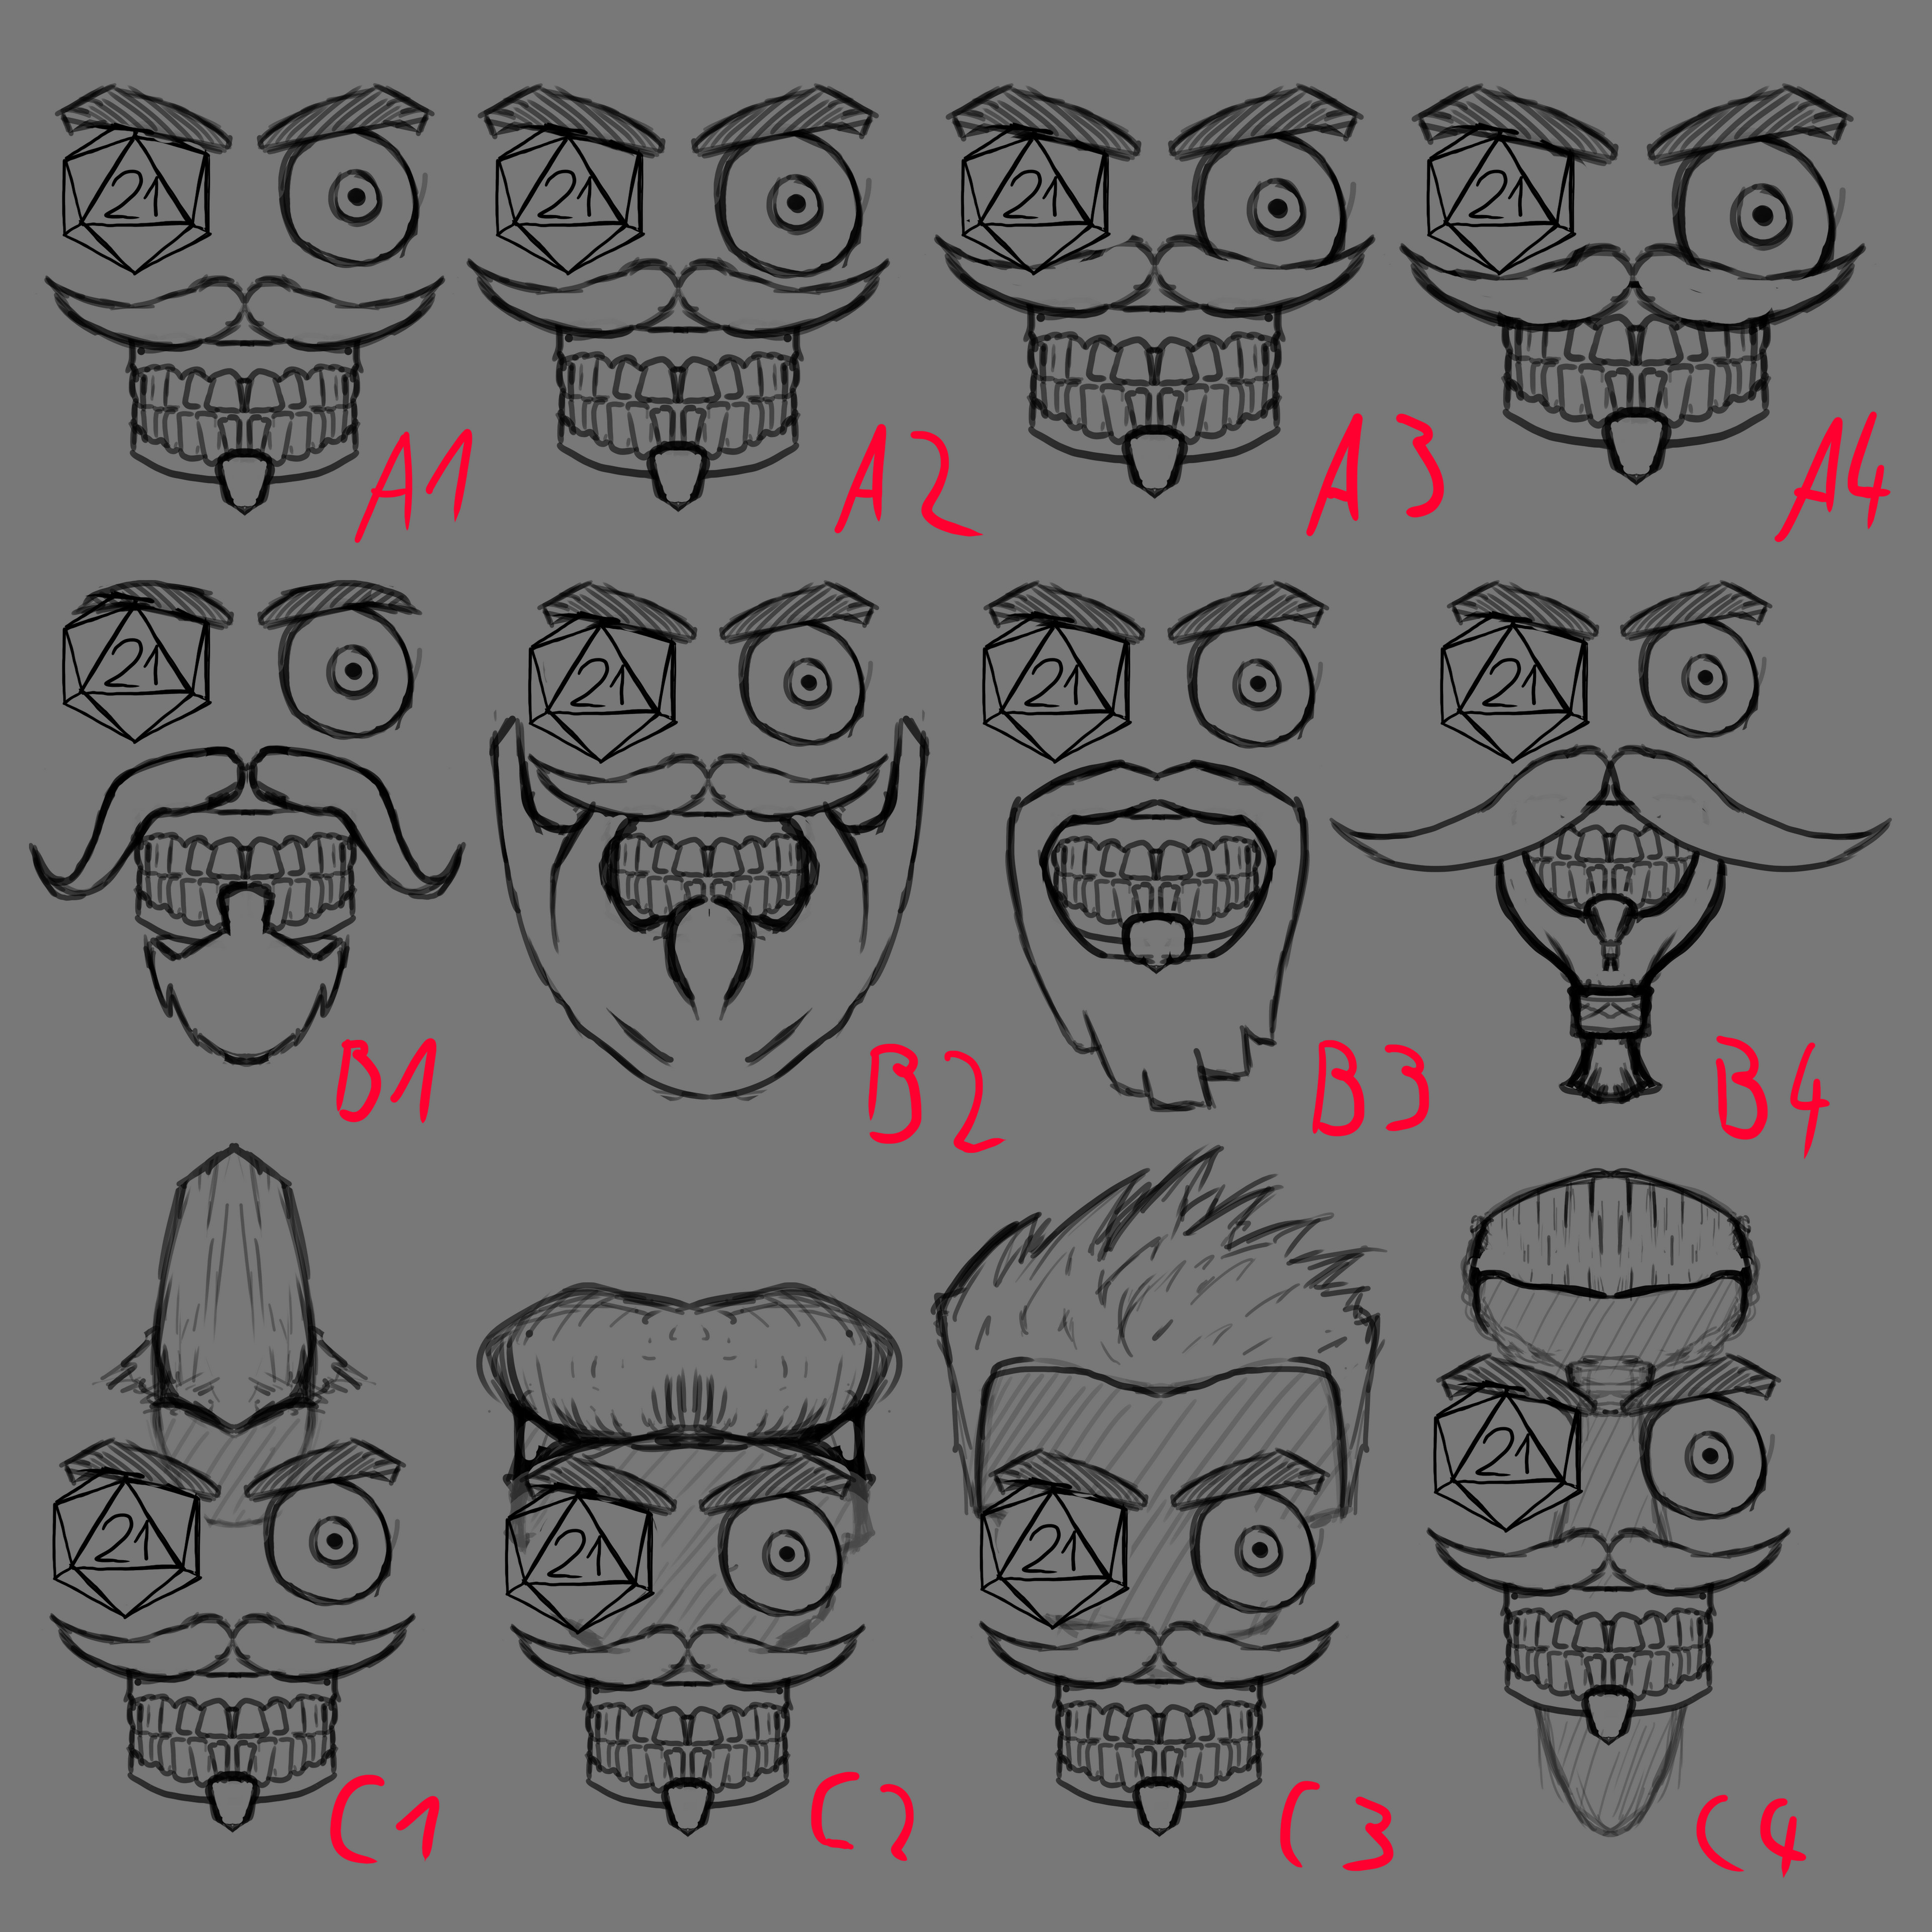 Drafts of a social media character for HDF Games.